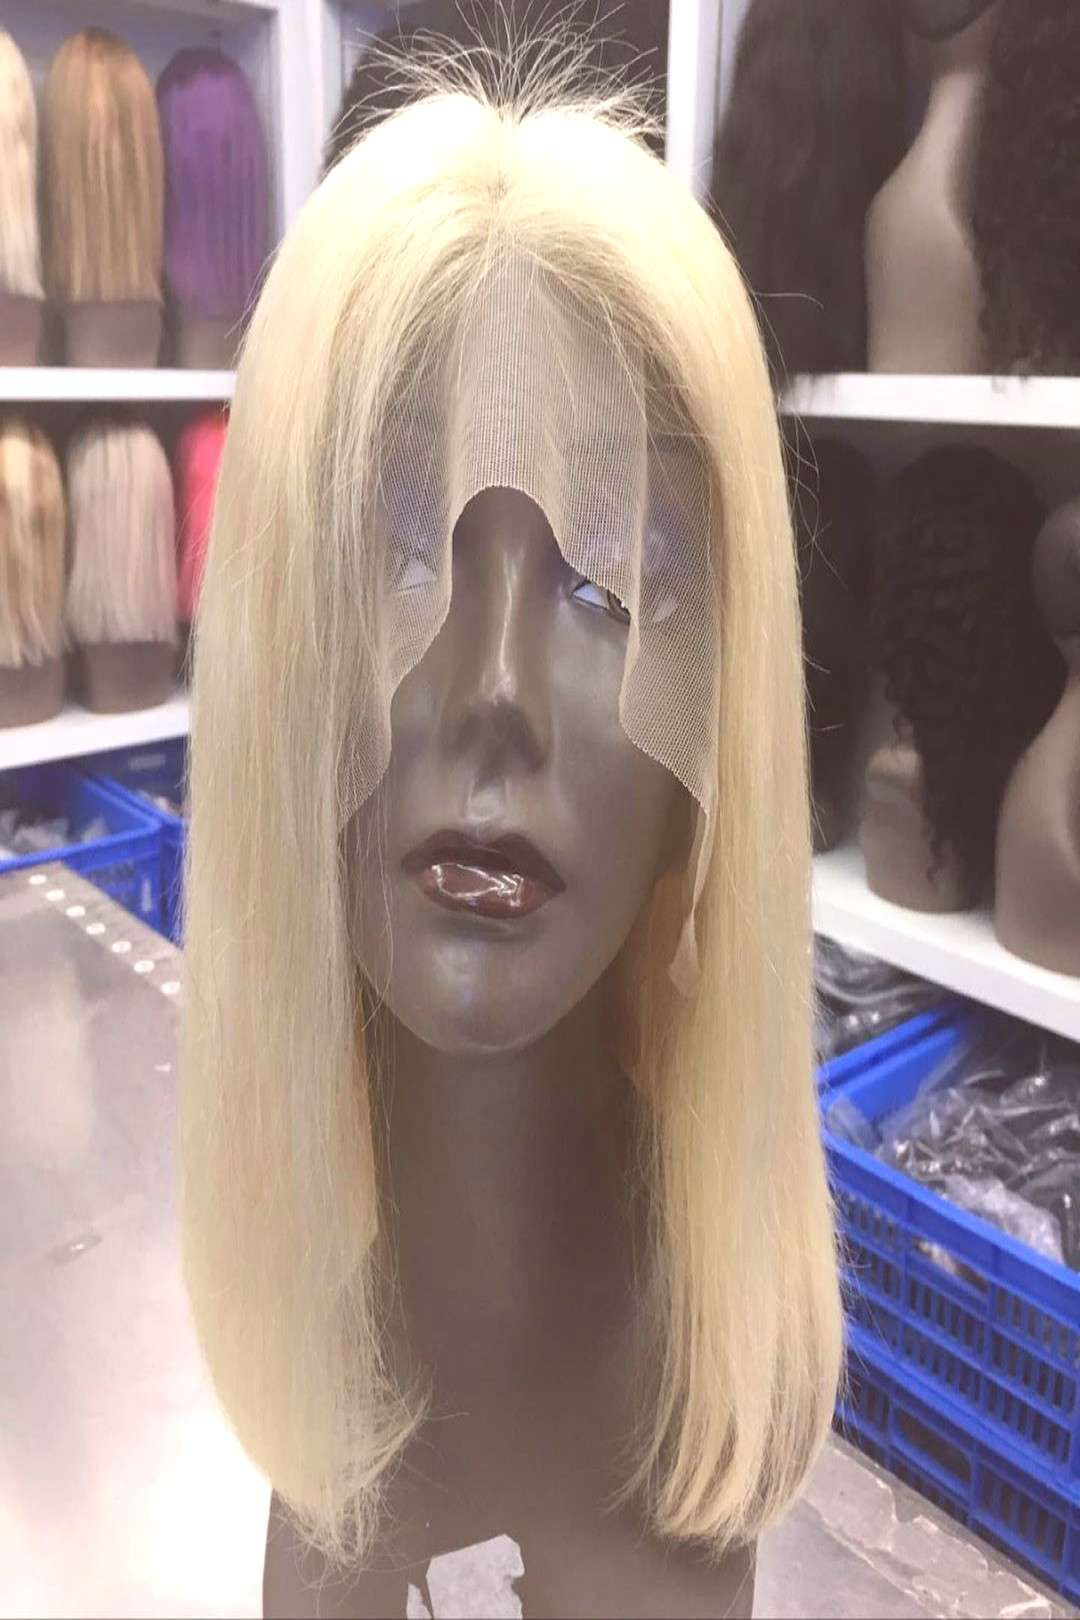 #straight #friend #follow #person #like #this #your #who #613 #bob #wig #tag #1 Who like this 613 straight bob wig Tag your friend! . . Follow You can find Lace wigs and more on our website.Who like this 613 straight bob wig Tag your f...